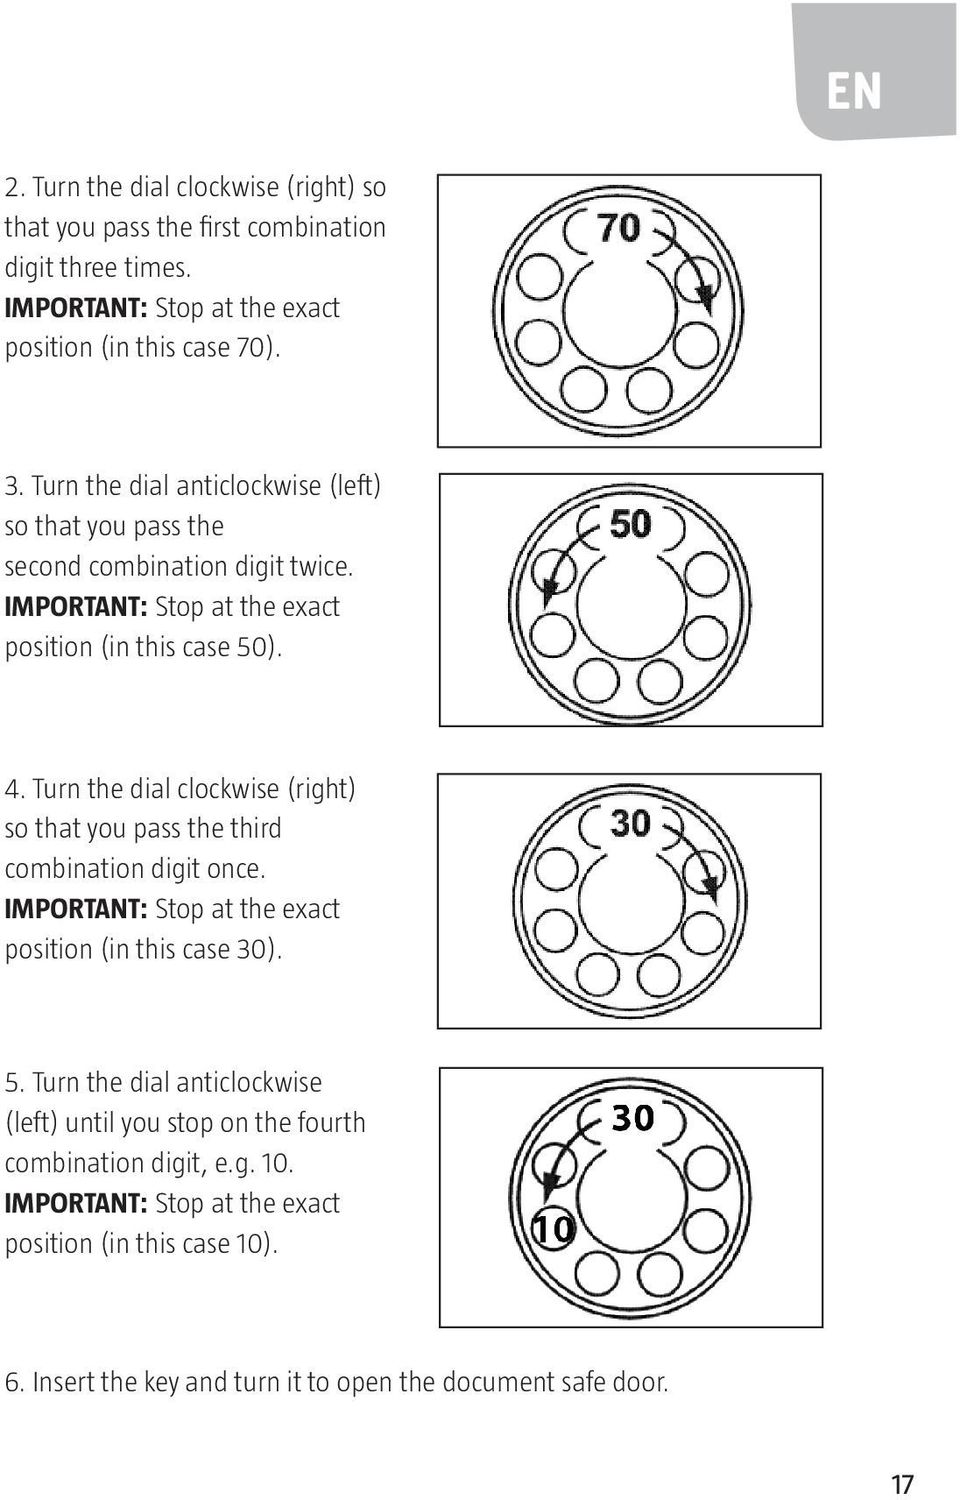 Turn the dial clockwise (right) so that you pass the third combination digit once. IMPORTANT: Stop at the exact position (in this case 30). 5.